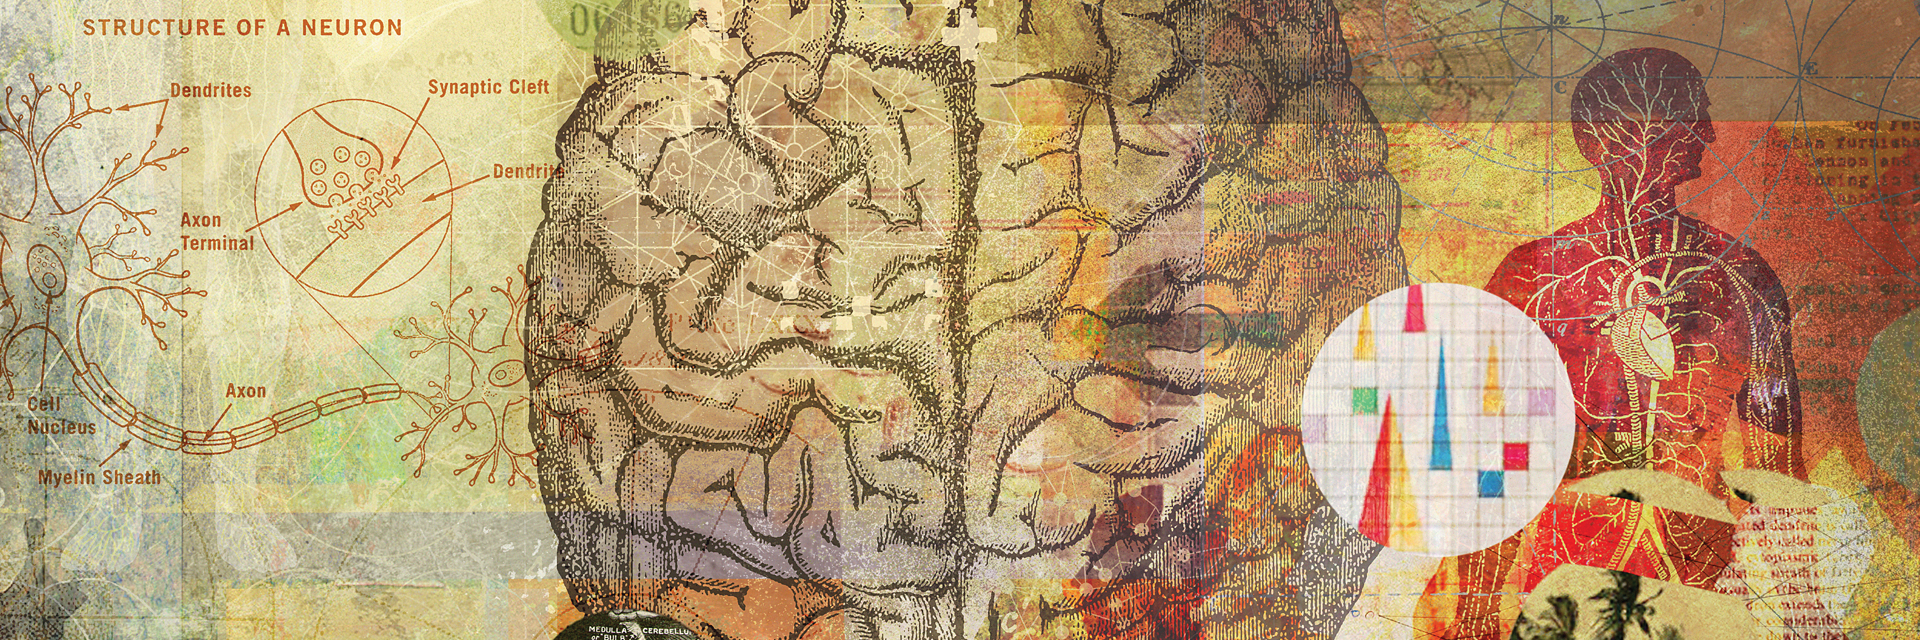 section of illustration showing brain